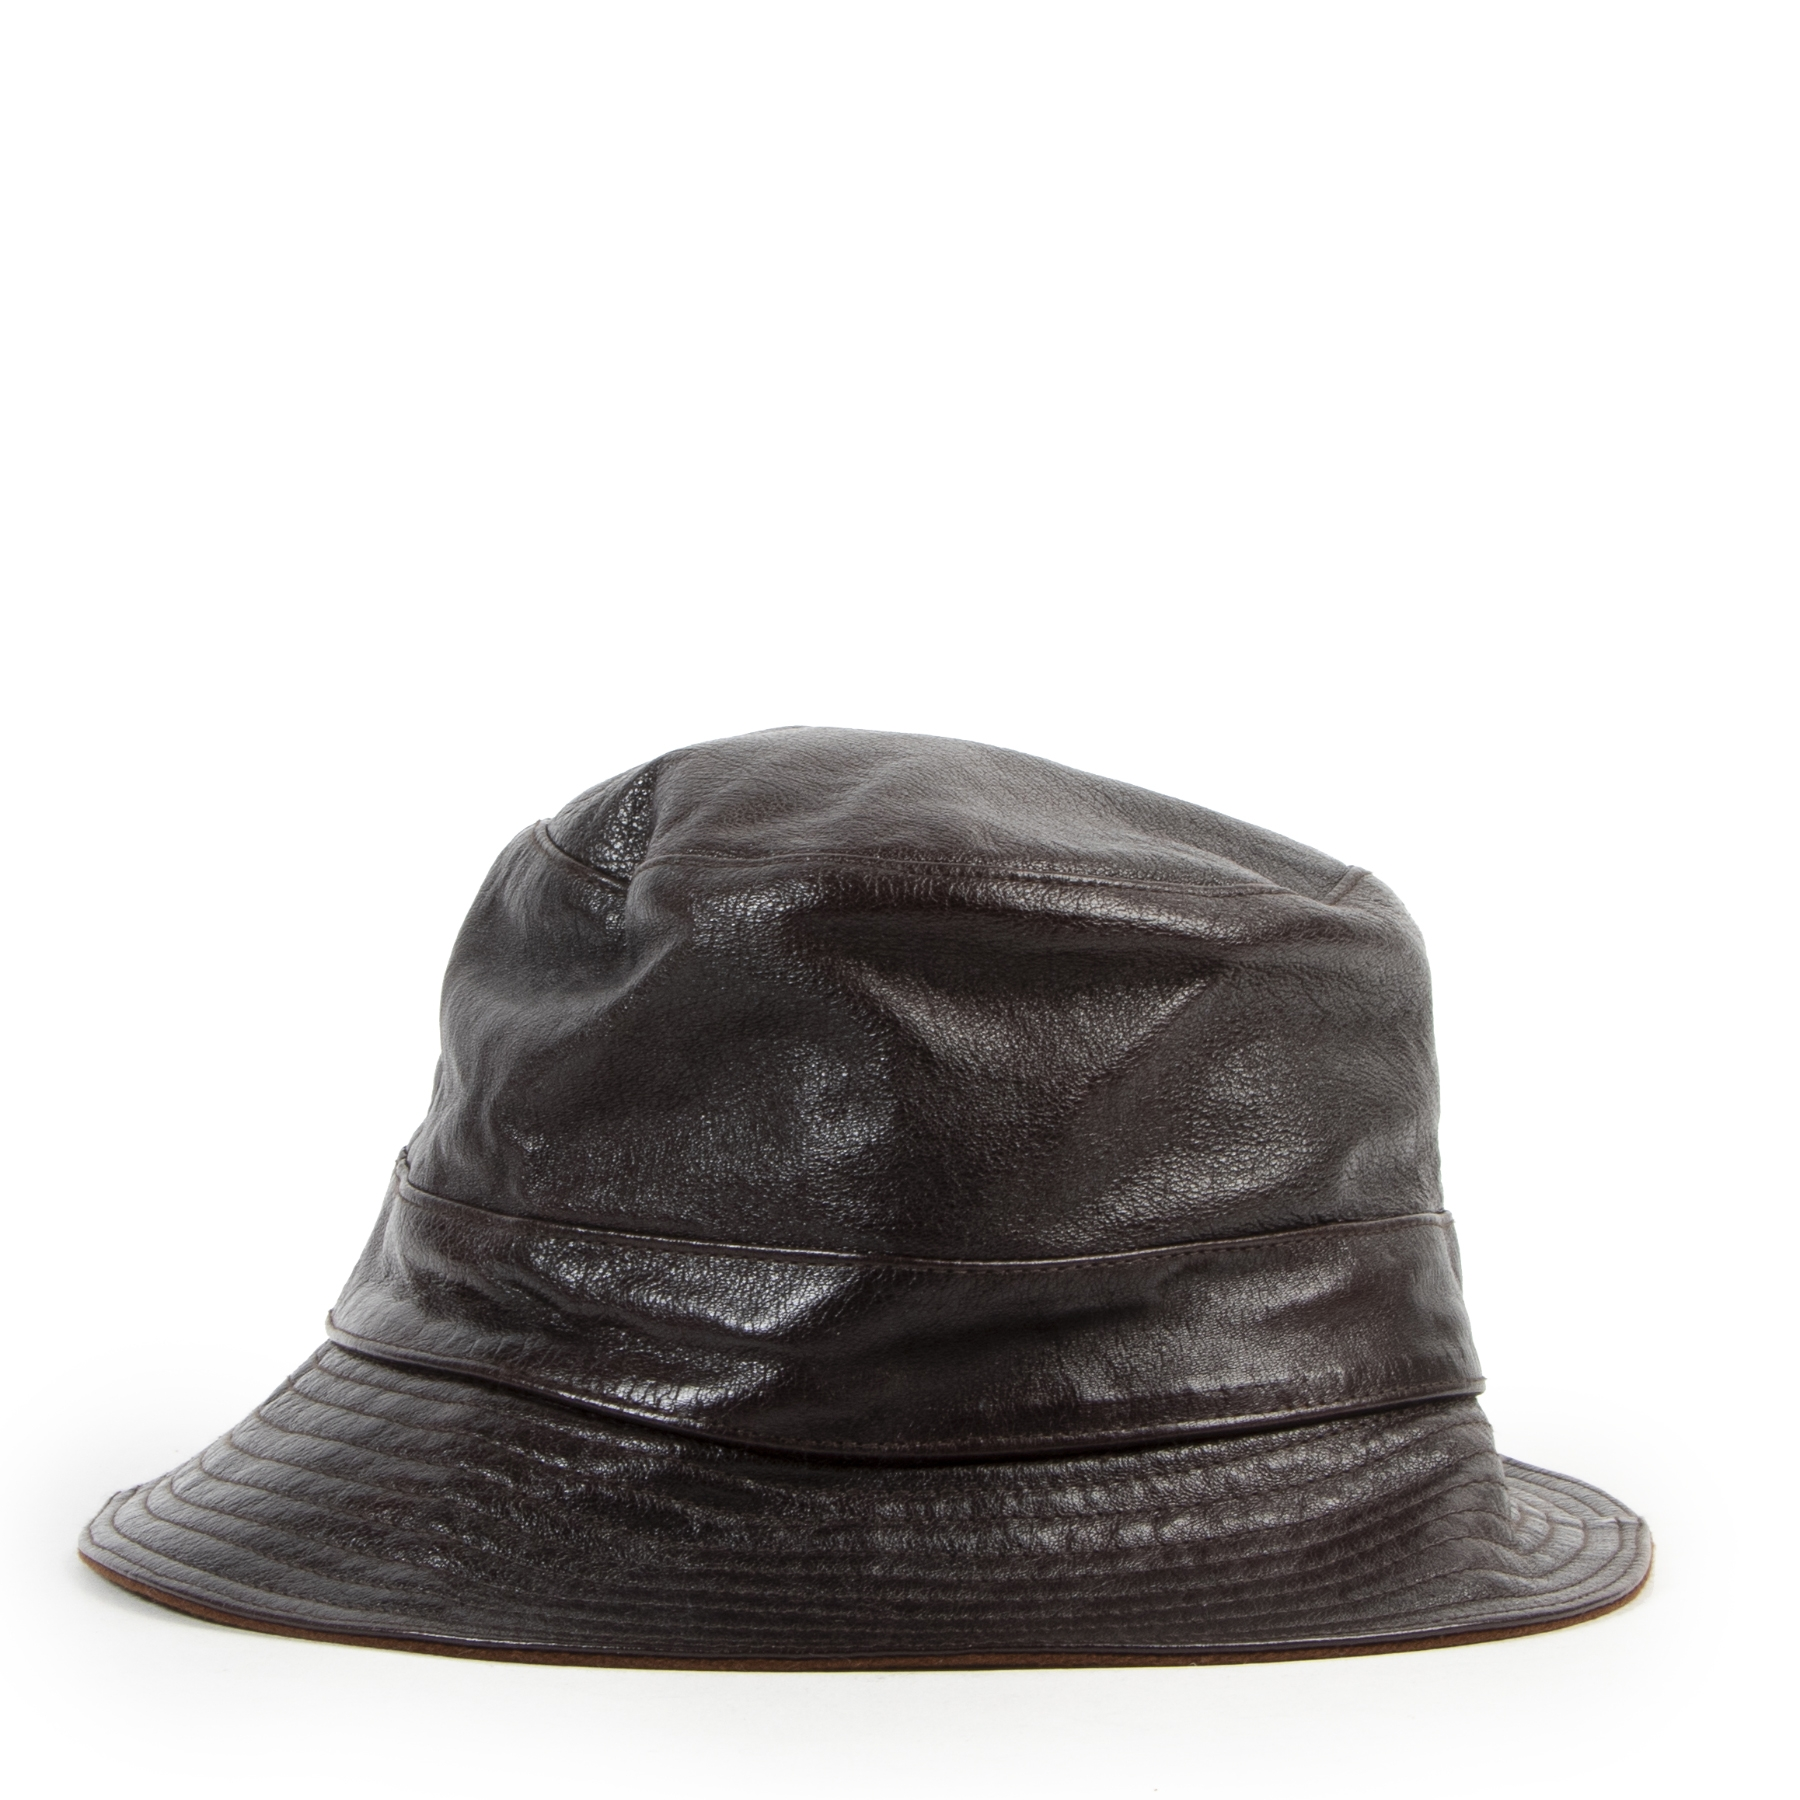 Buy this authentic second-hand vintage Hèrmes Brown Leather Bucket Hat at online webshop LabelLOV. Safe and secure shopping. Koop deze authentieke tweedehands vintage Hèrmes Brown Leather Bucket Hat bij online webshop LabelLOV.